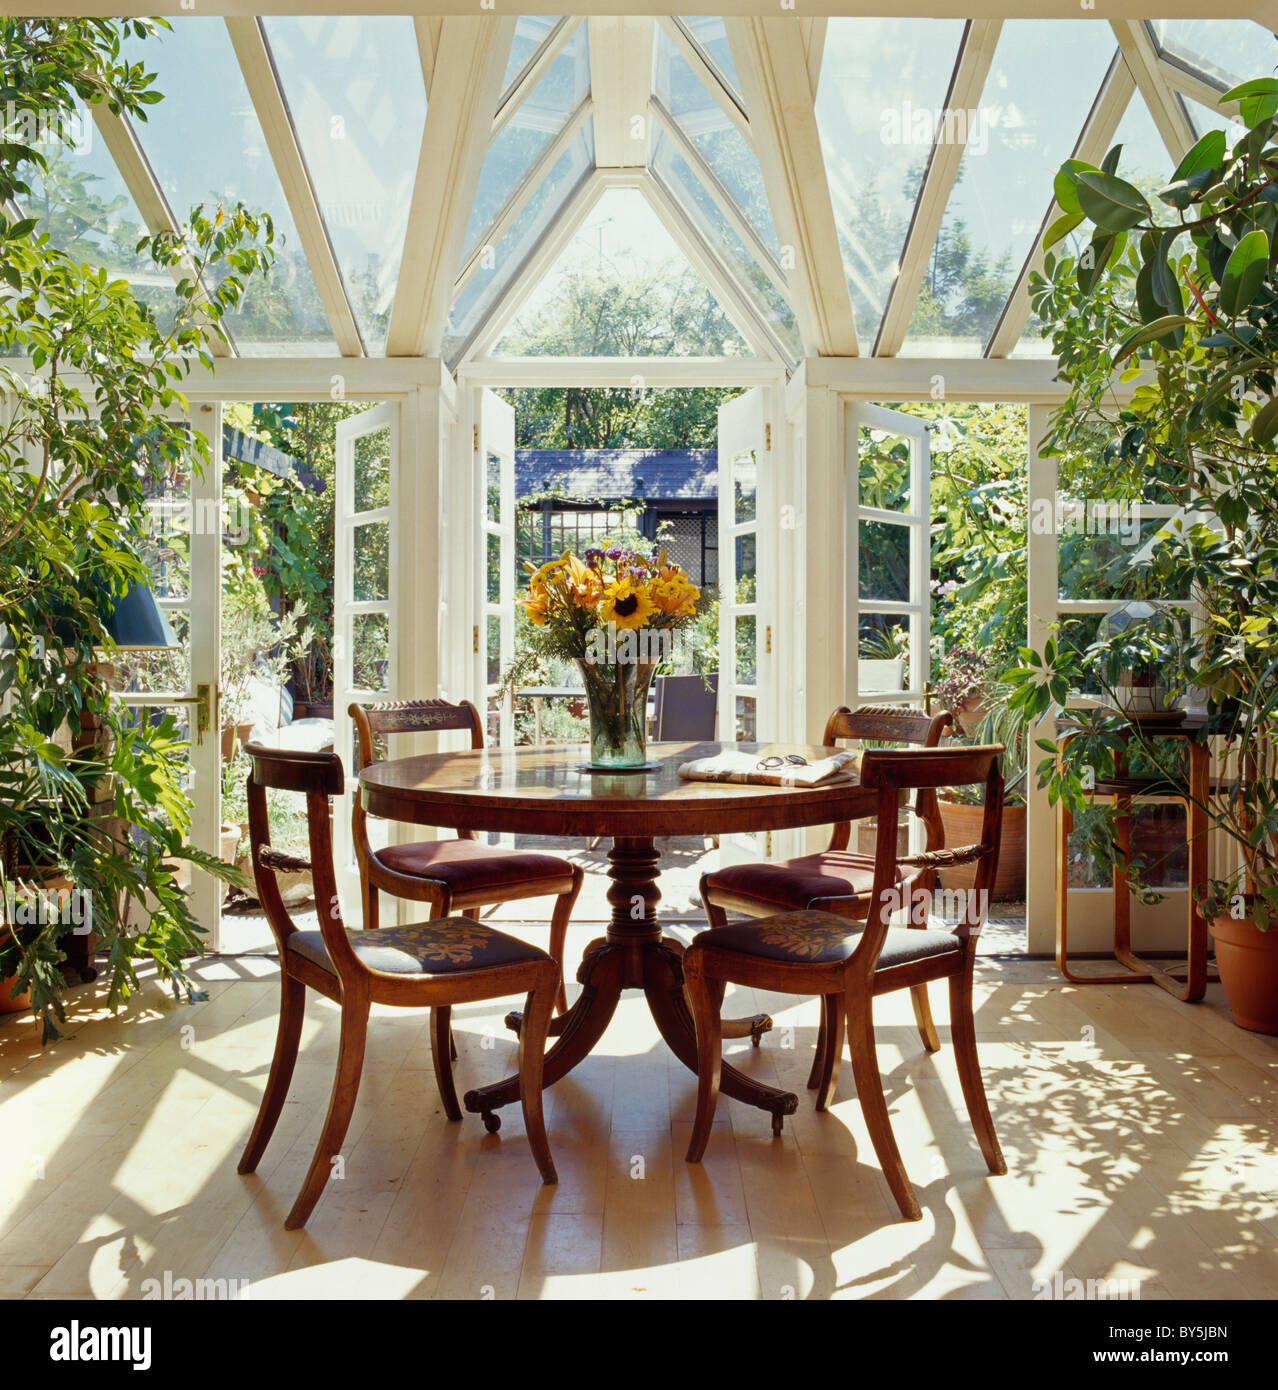 Antique Circular Table And Chairs In Sunny Conservatory Dining Room With Doors Open To Garden